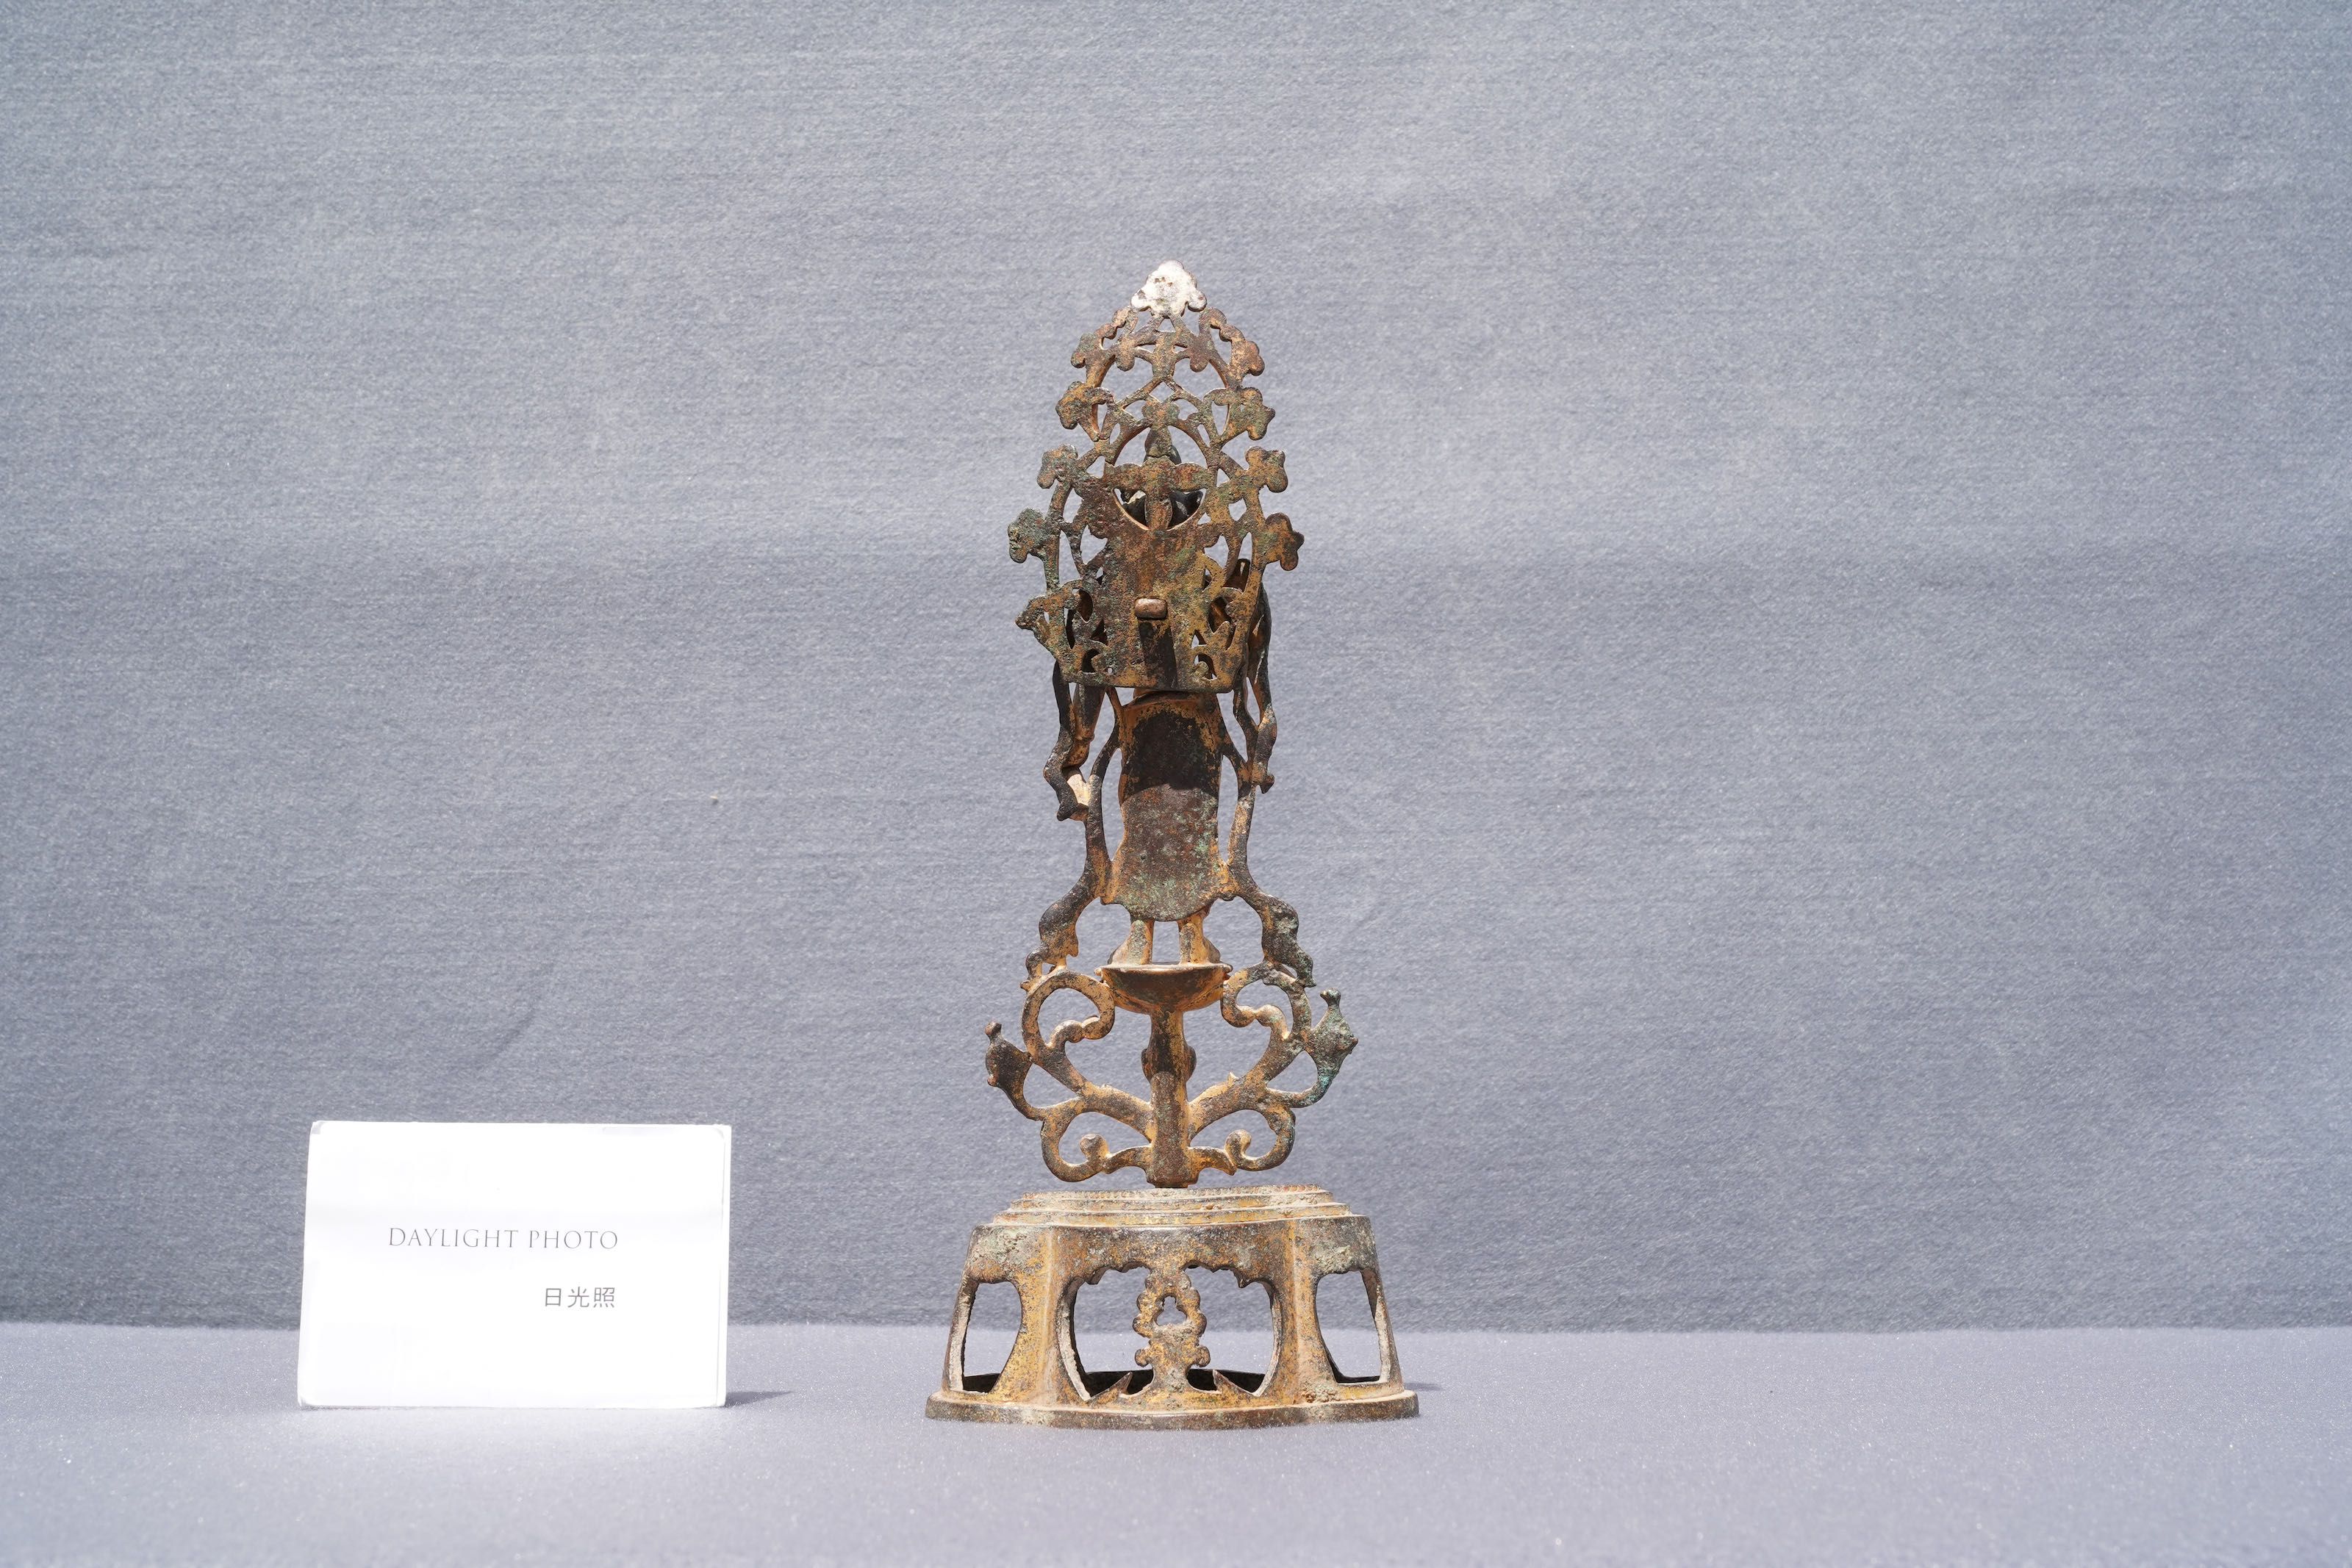 A Chinese gilt bronze figure of Buddha standing, probably Northern Wei dynasty - Image 10 of 13